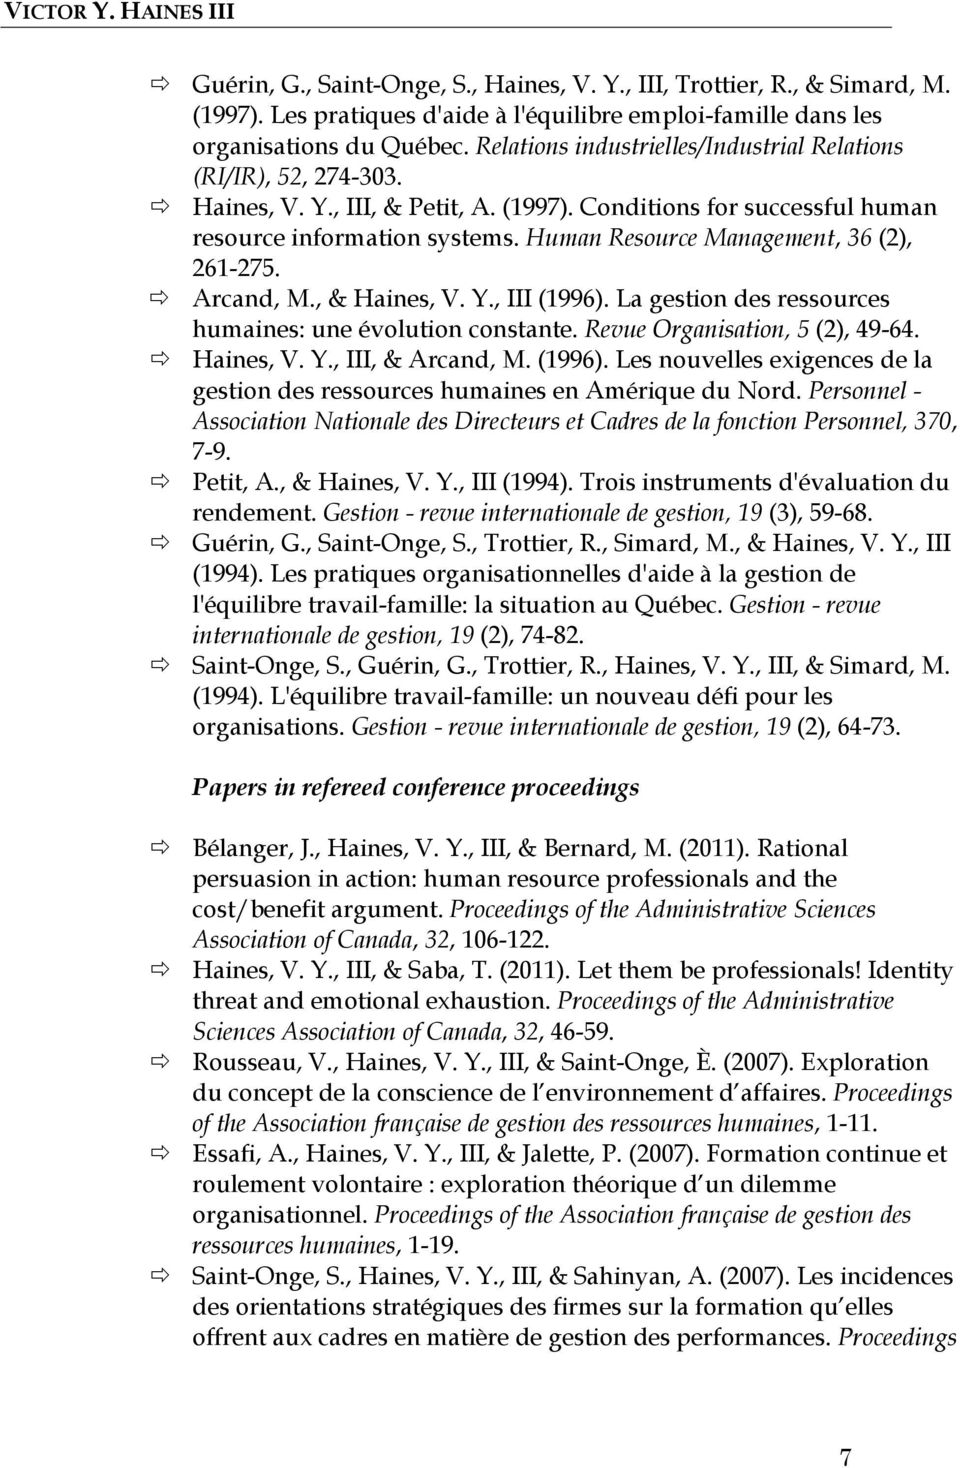 Human Resource Management, 36 (2), 261-275. Arcand, M., & Haines, V. Y., III (1996). La gestion des ressources humaines: une évolution constante. Revue Organisation, 5 (2), 49-64. Haines, V. Y., III, & Arcand, M.